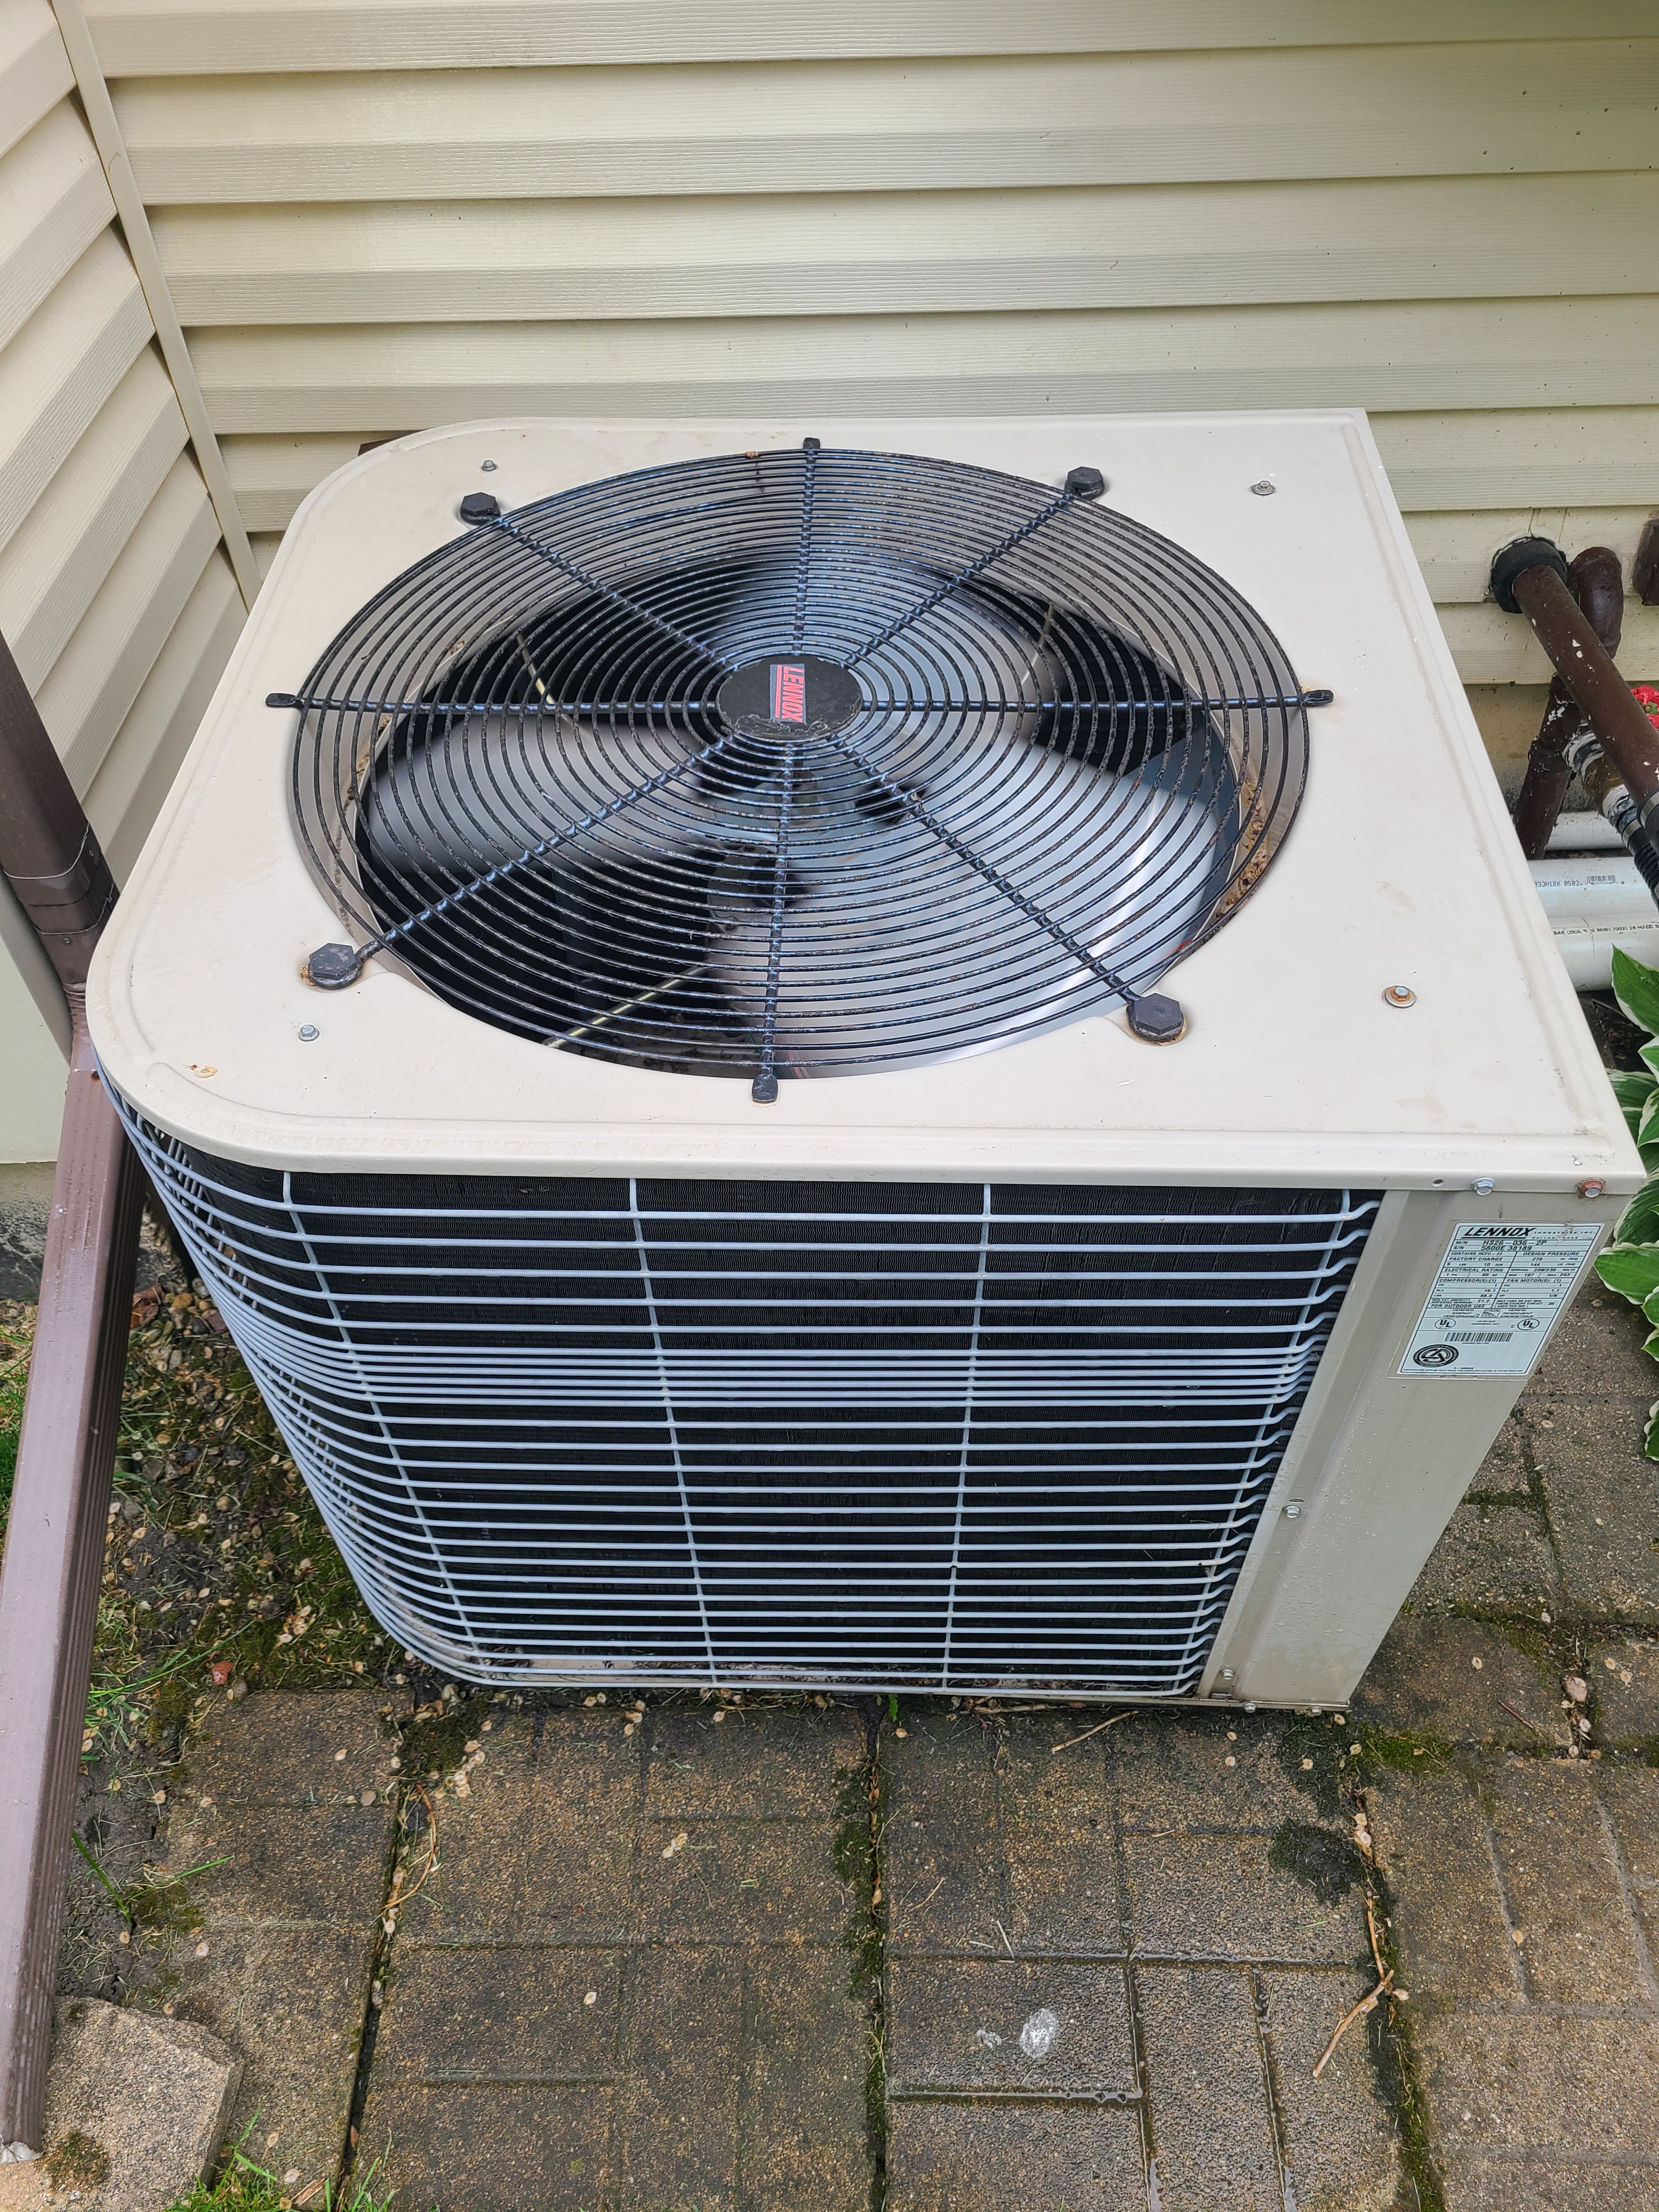 Performed routine maintenance on a Lennox R22 unit. Checked voltage, amperage, temperatures, pressures, and microfarads. Washed condenser coil thoroughly.